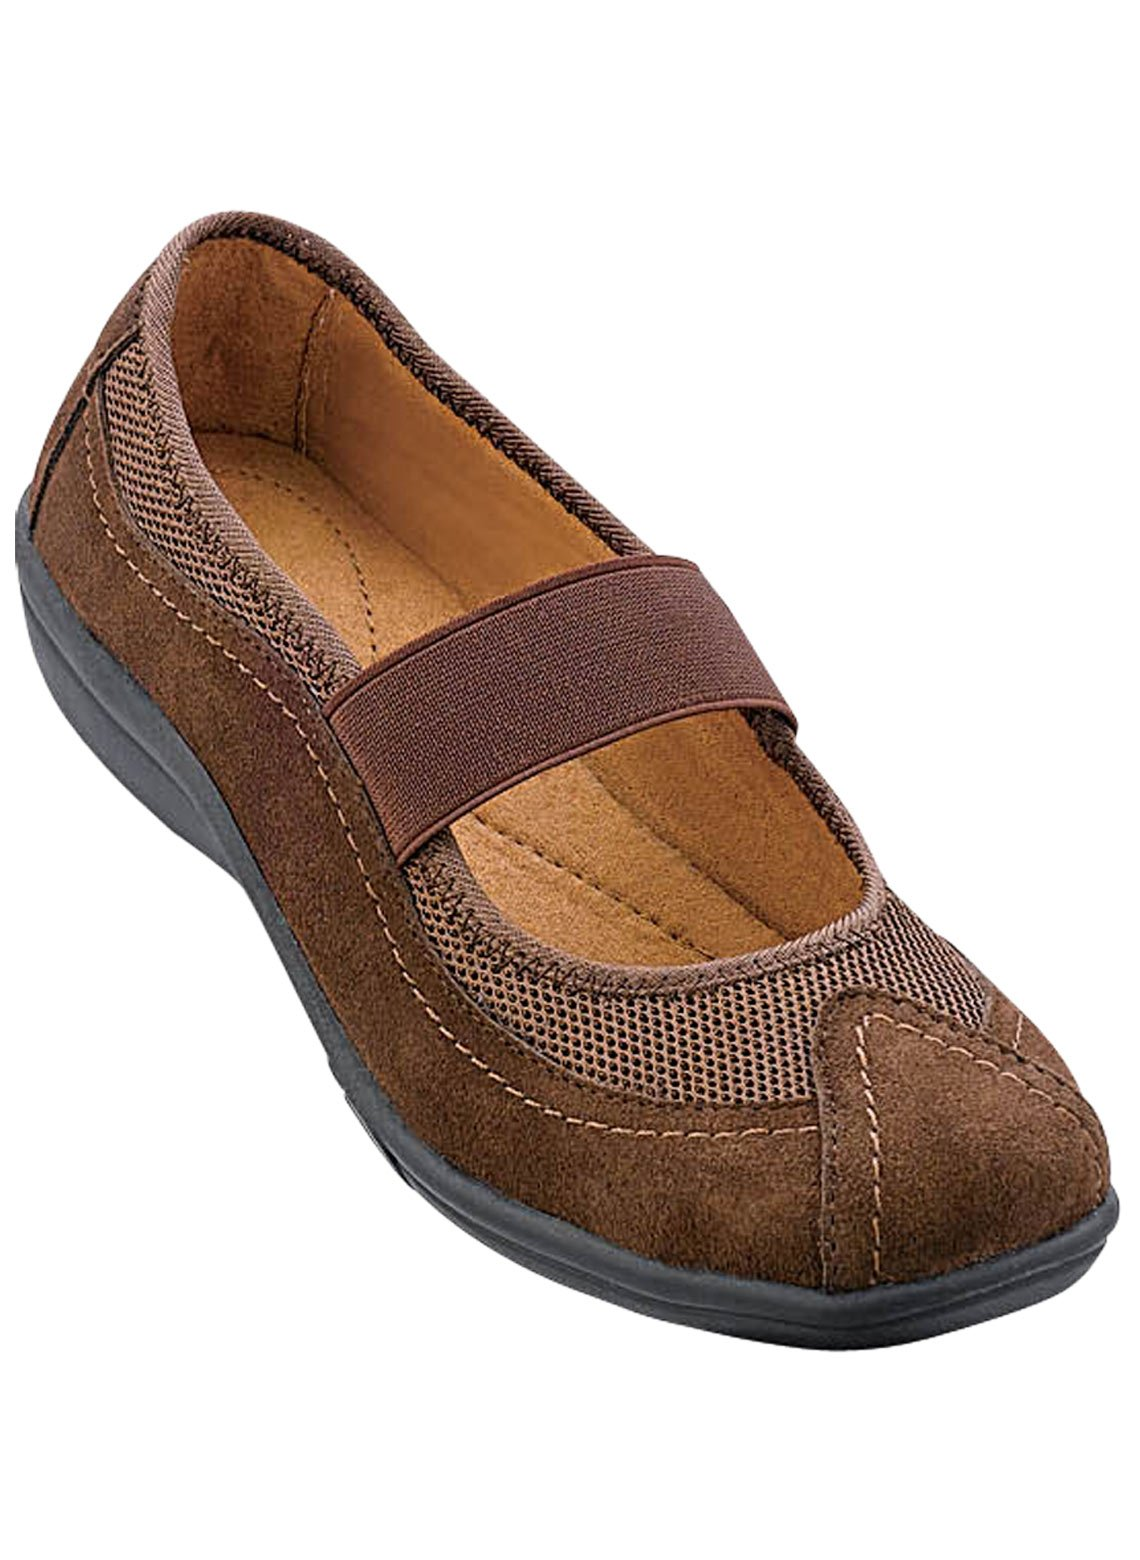 Carol Wright Gifts Mary Jane Casuals, Brown, Size 11 (Wide)